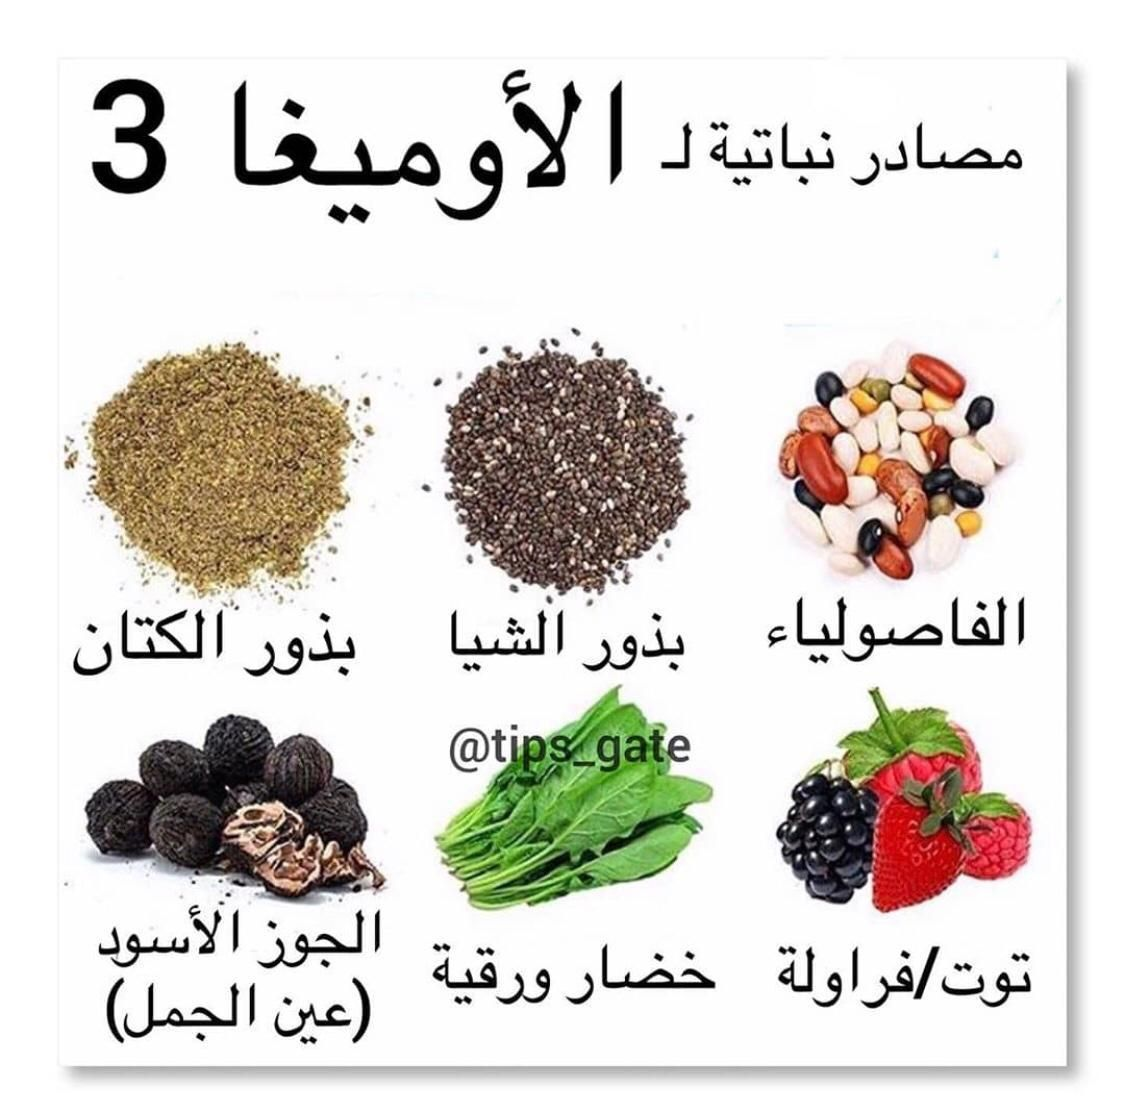 Pin By قصي قصي On Calligraphy Health Facts Food Health Fitness Nutrition Health Facts Fitness